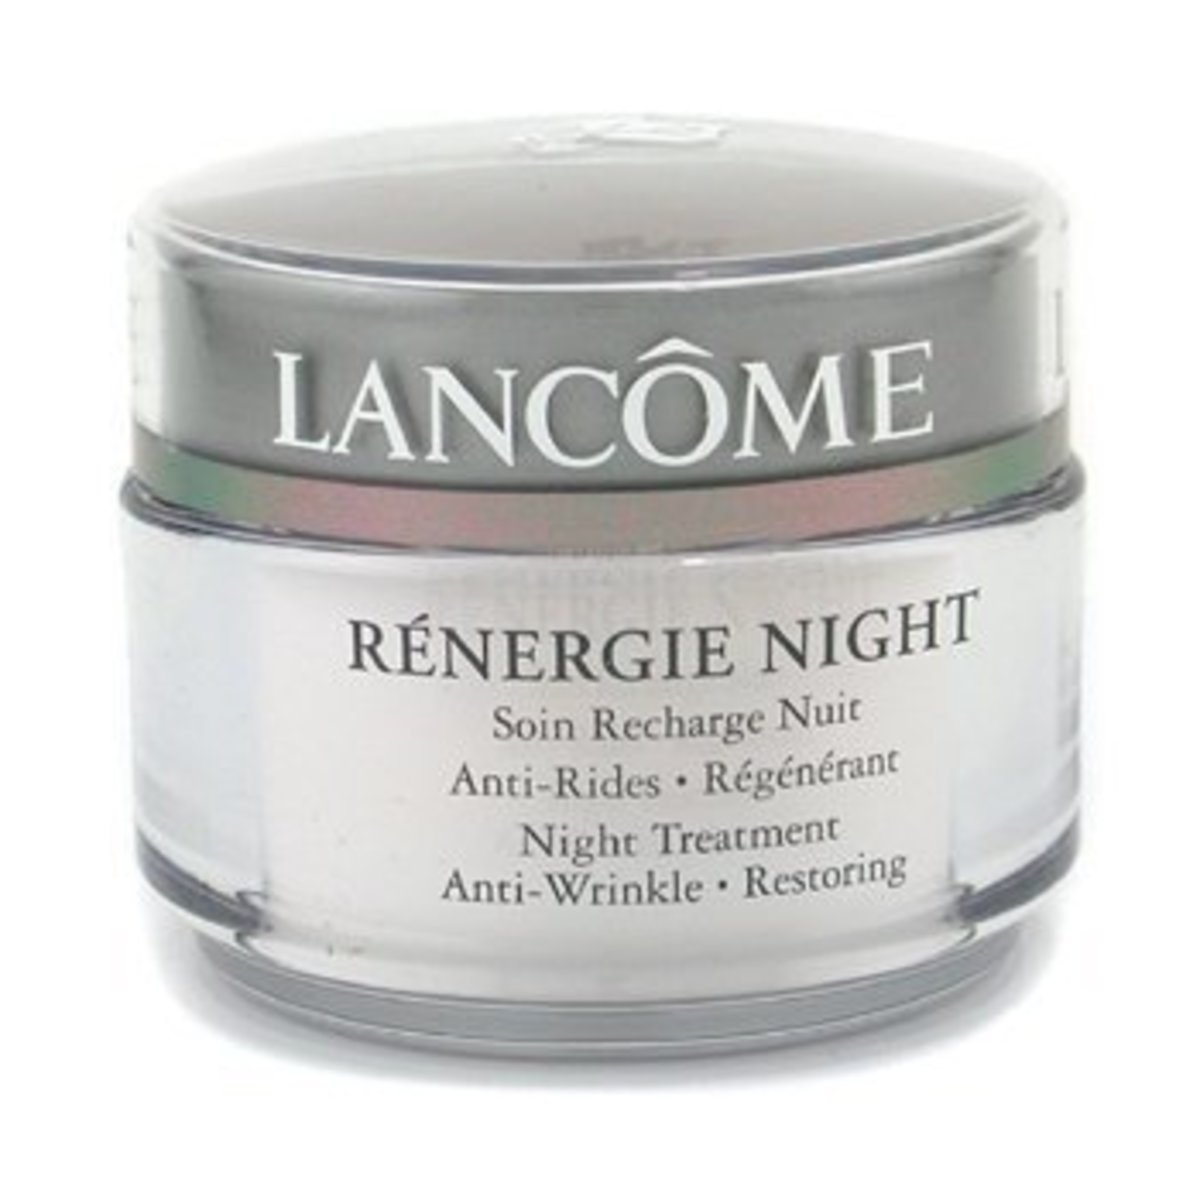 RENERGIE NUIT Night Treatment  (Restoring, Firming, Anti-Wrinkle) 75g (Parallel Import)